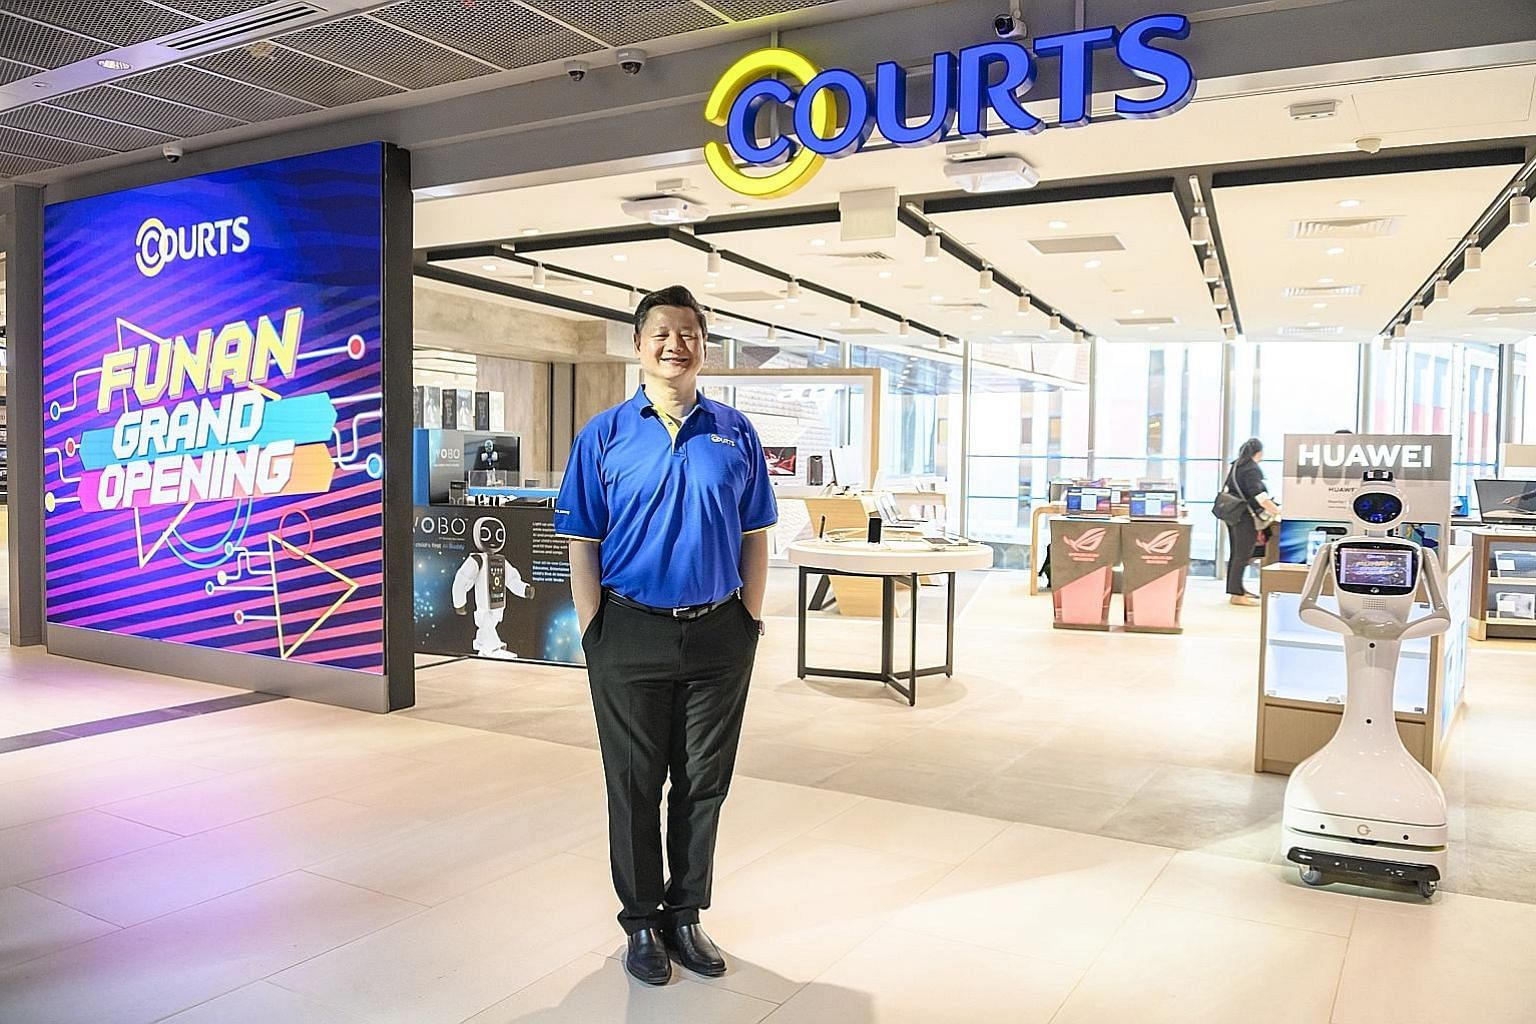 Courts Singapore chief executive Ben Tan at its new 12,000 sq ft store (left) in Funan mall, which houses a Google experience zone (right) as well as a Samsung smart home experience zone.